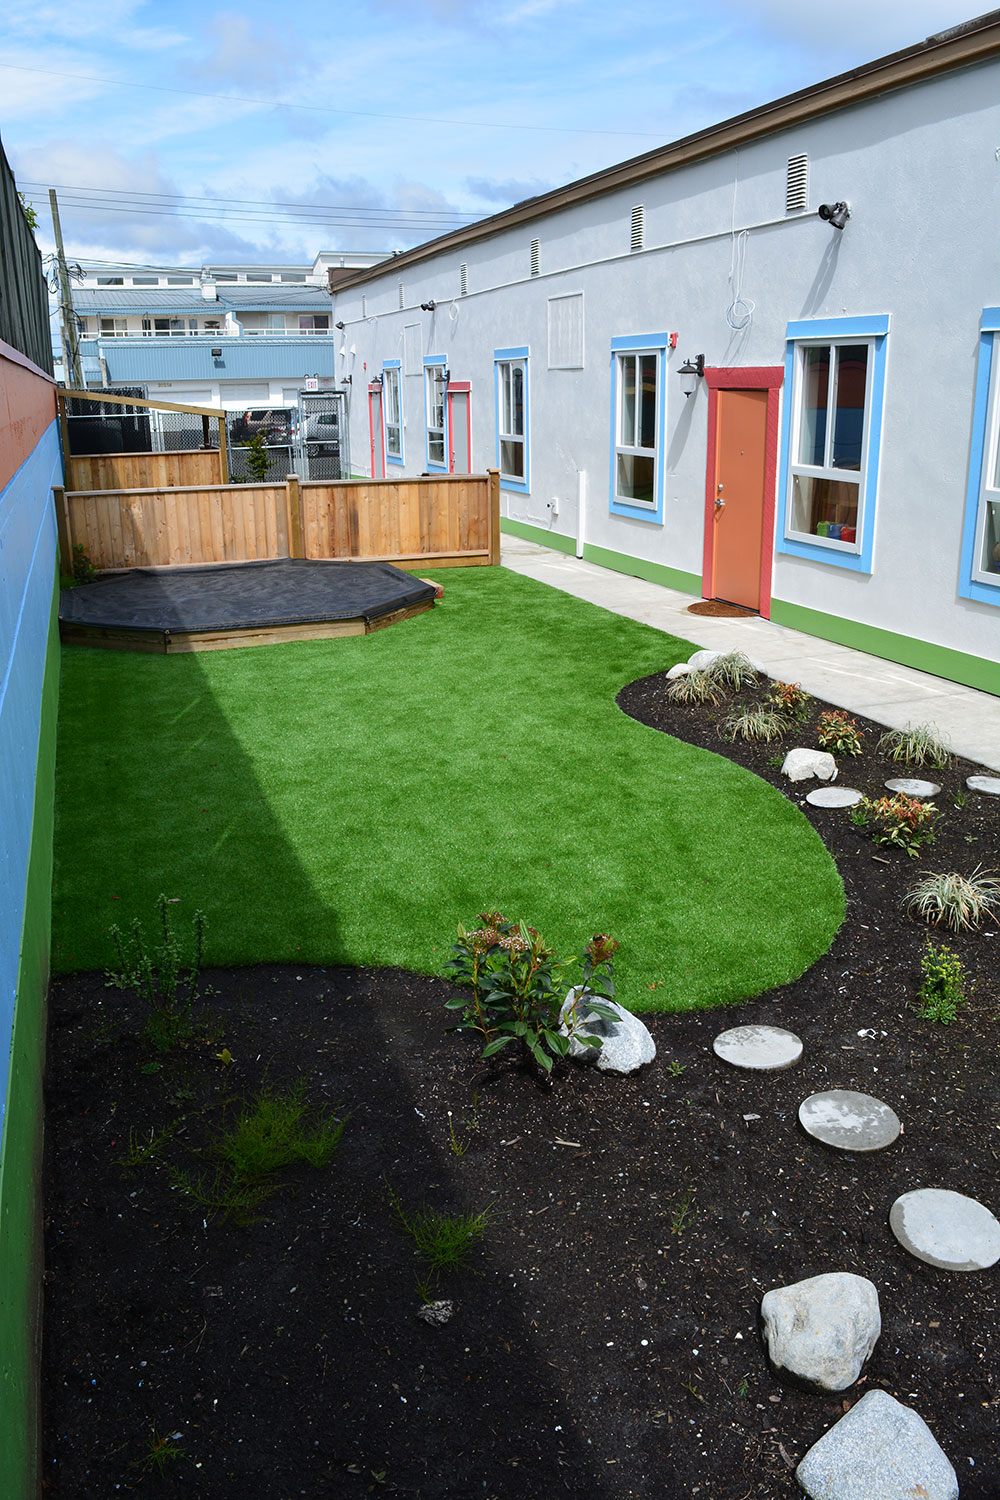 Childcare Center Landscapers: Building Safe and Educational Outdoor Play Areas for Kids in Langley, BC